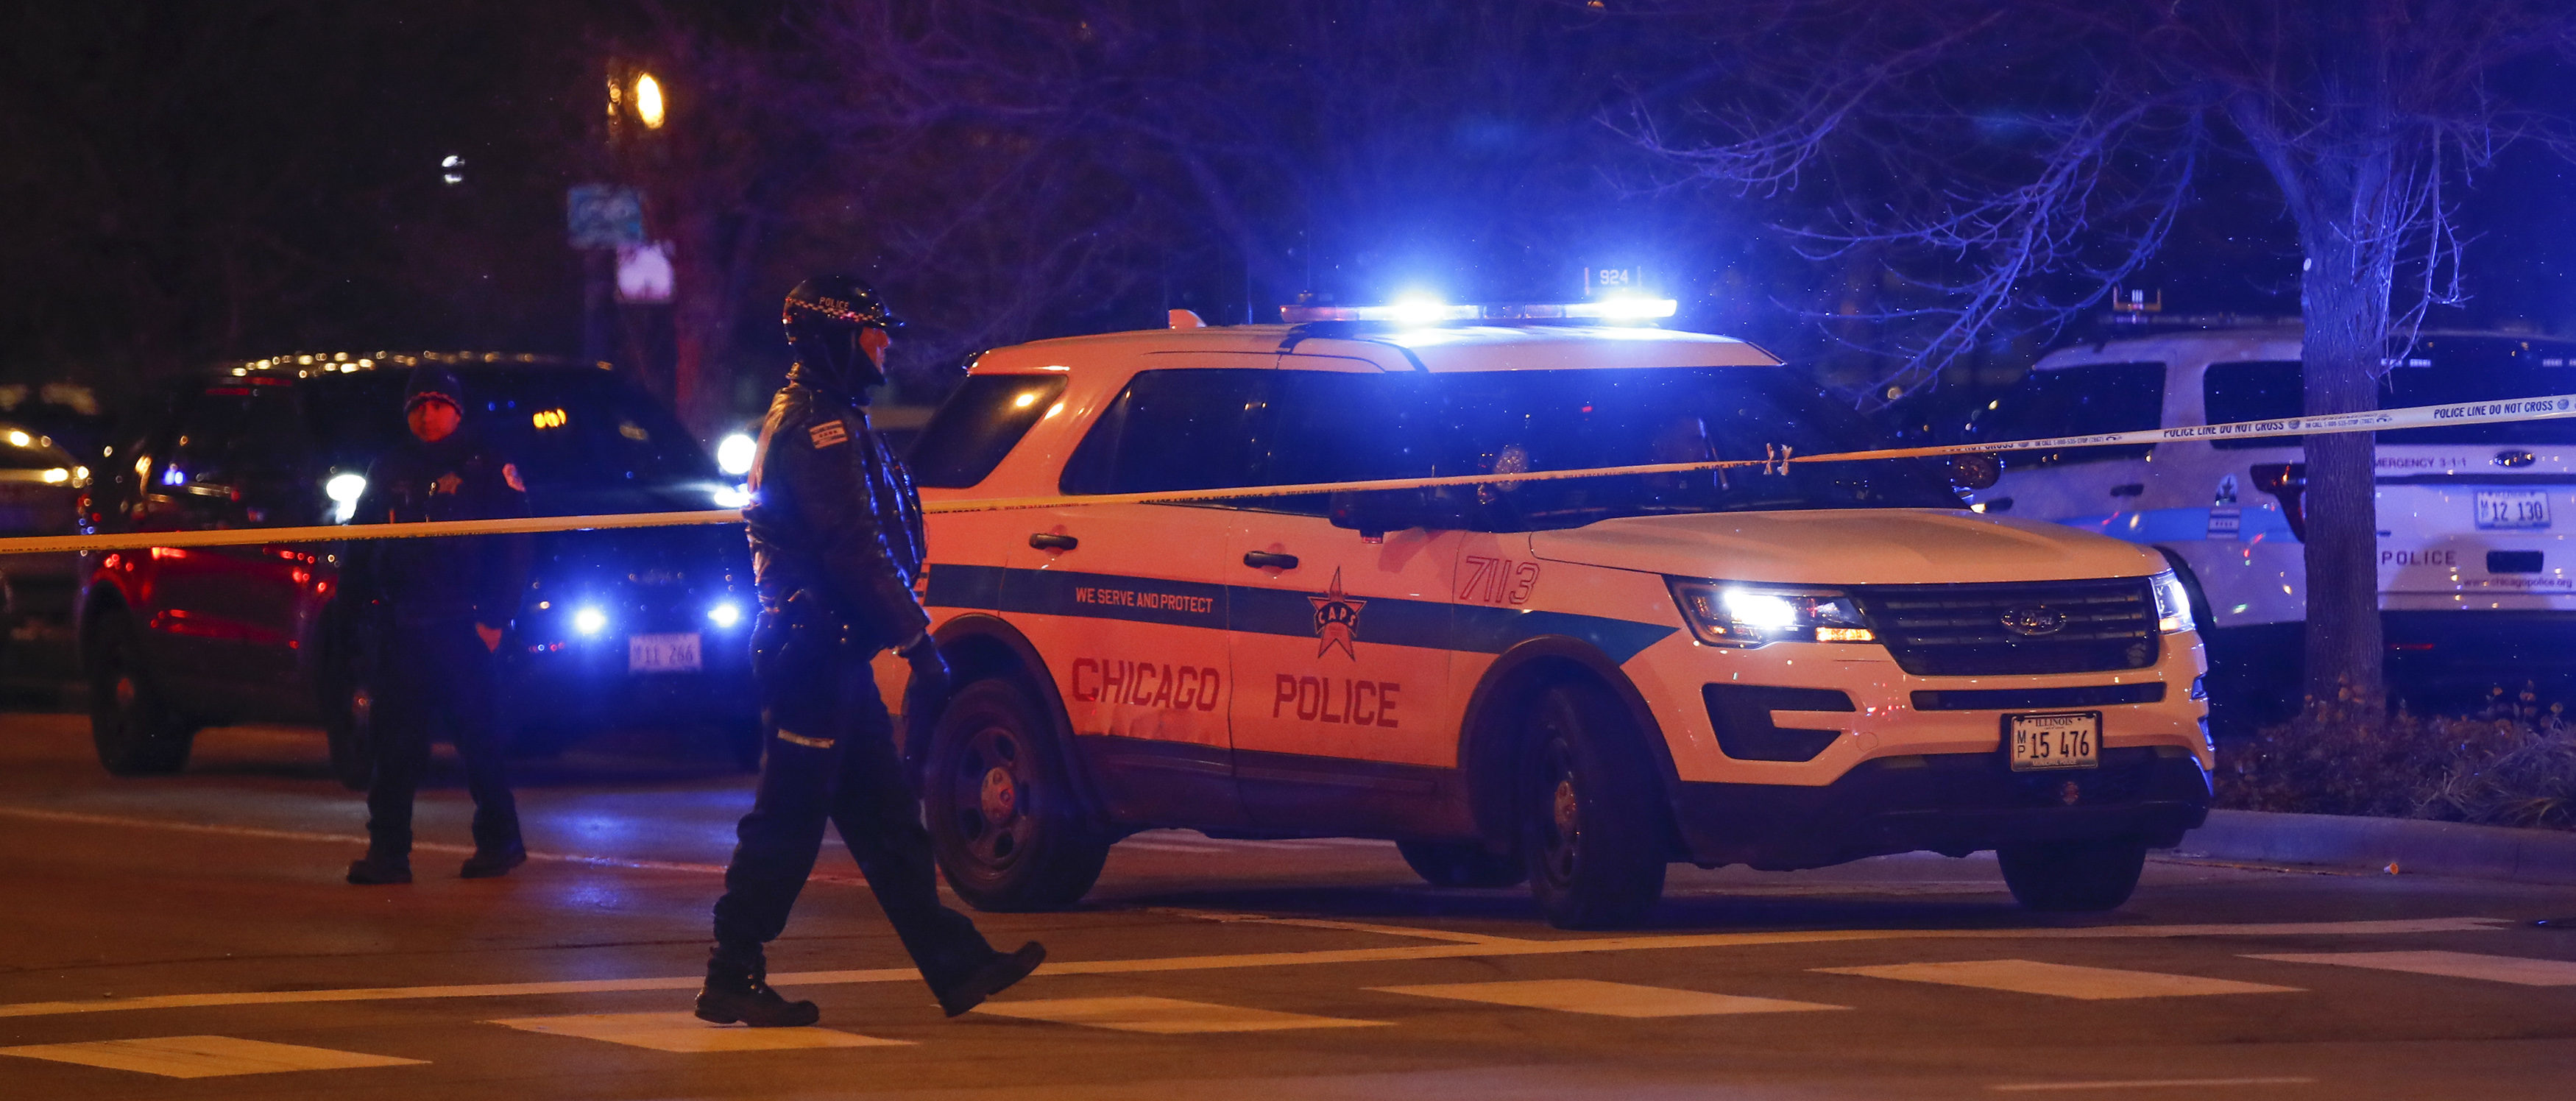 Chicago Police officers monitor the area outside of the Chicago Mercy Hospital where a gunman opened fire in Chicago on November 19, 2018. (Photo by KAMIL KRZACZYNSKI/AFP/Getty Images)